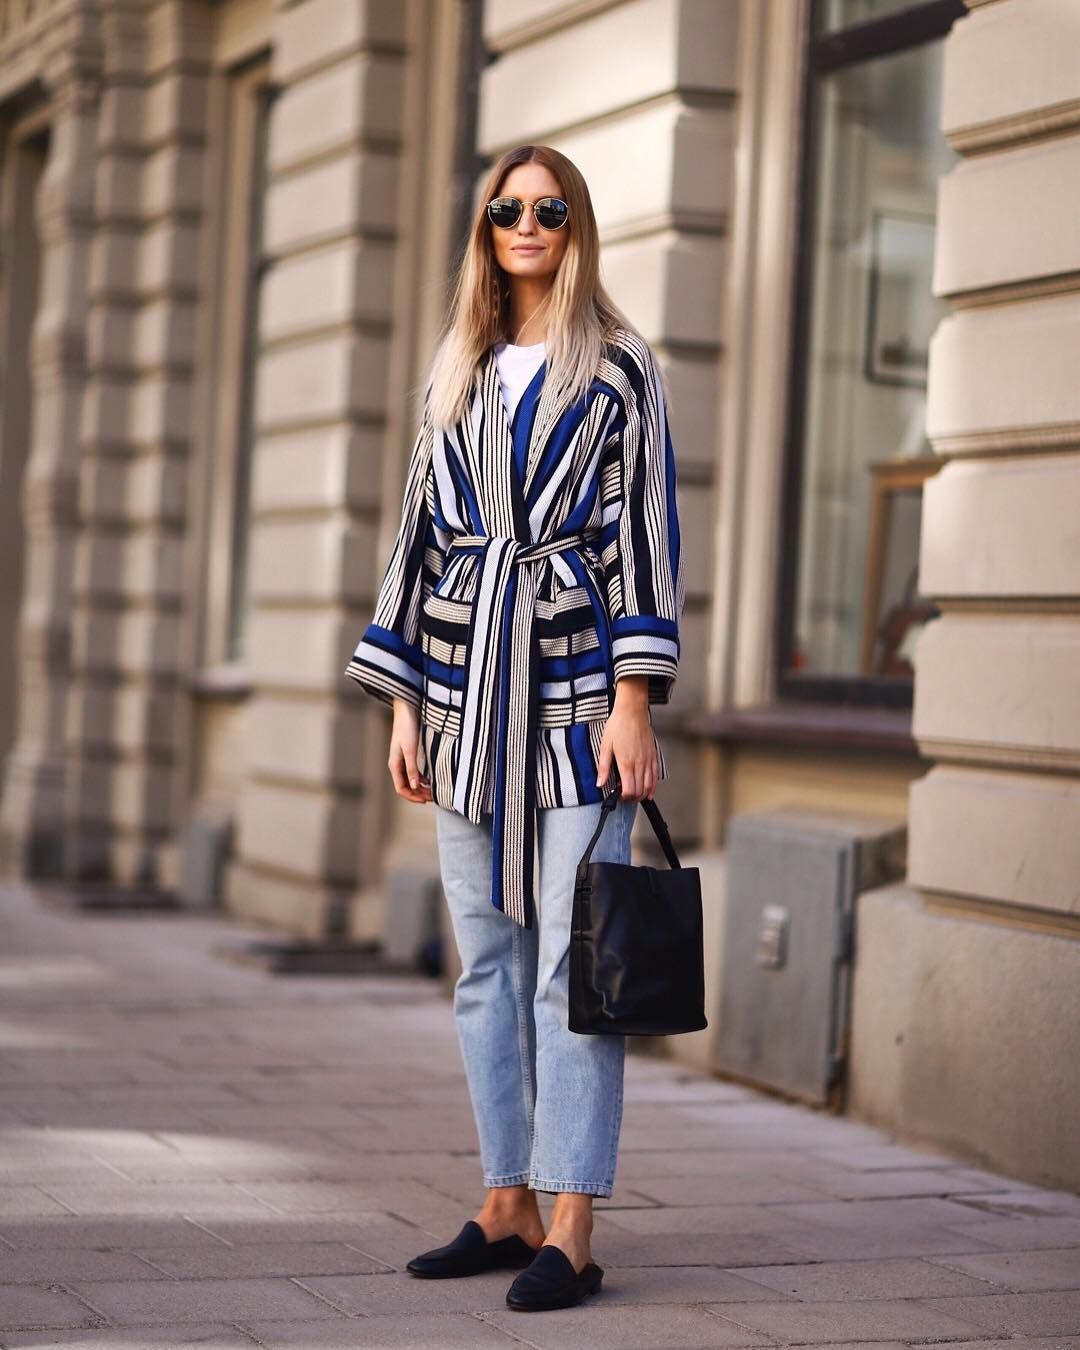 Let's Face It Scandinavian Fashion Girls Are Just Dreamy ...